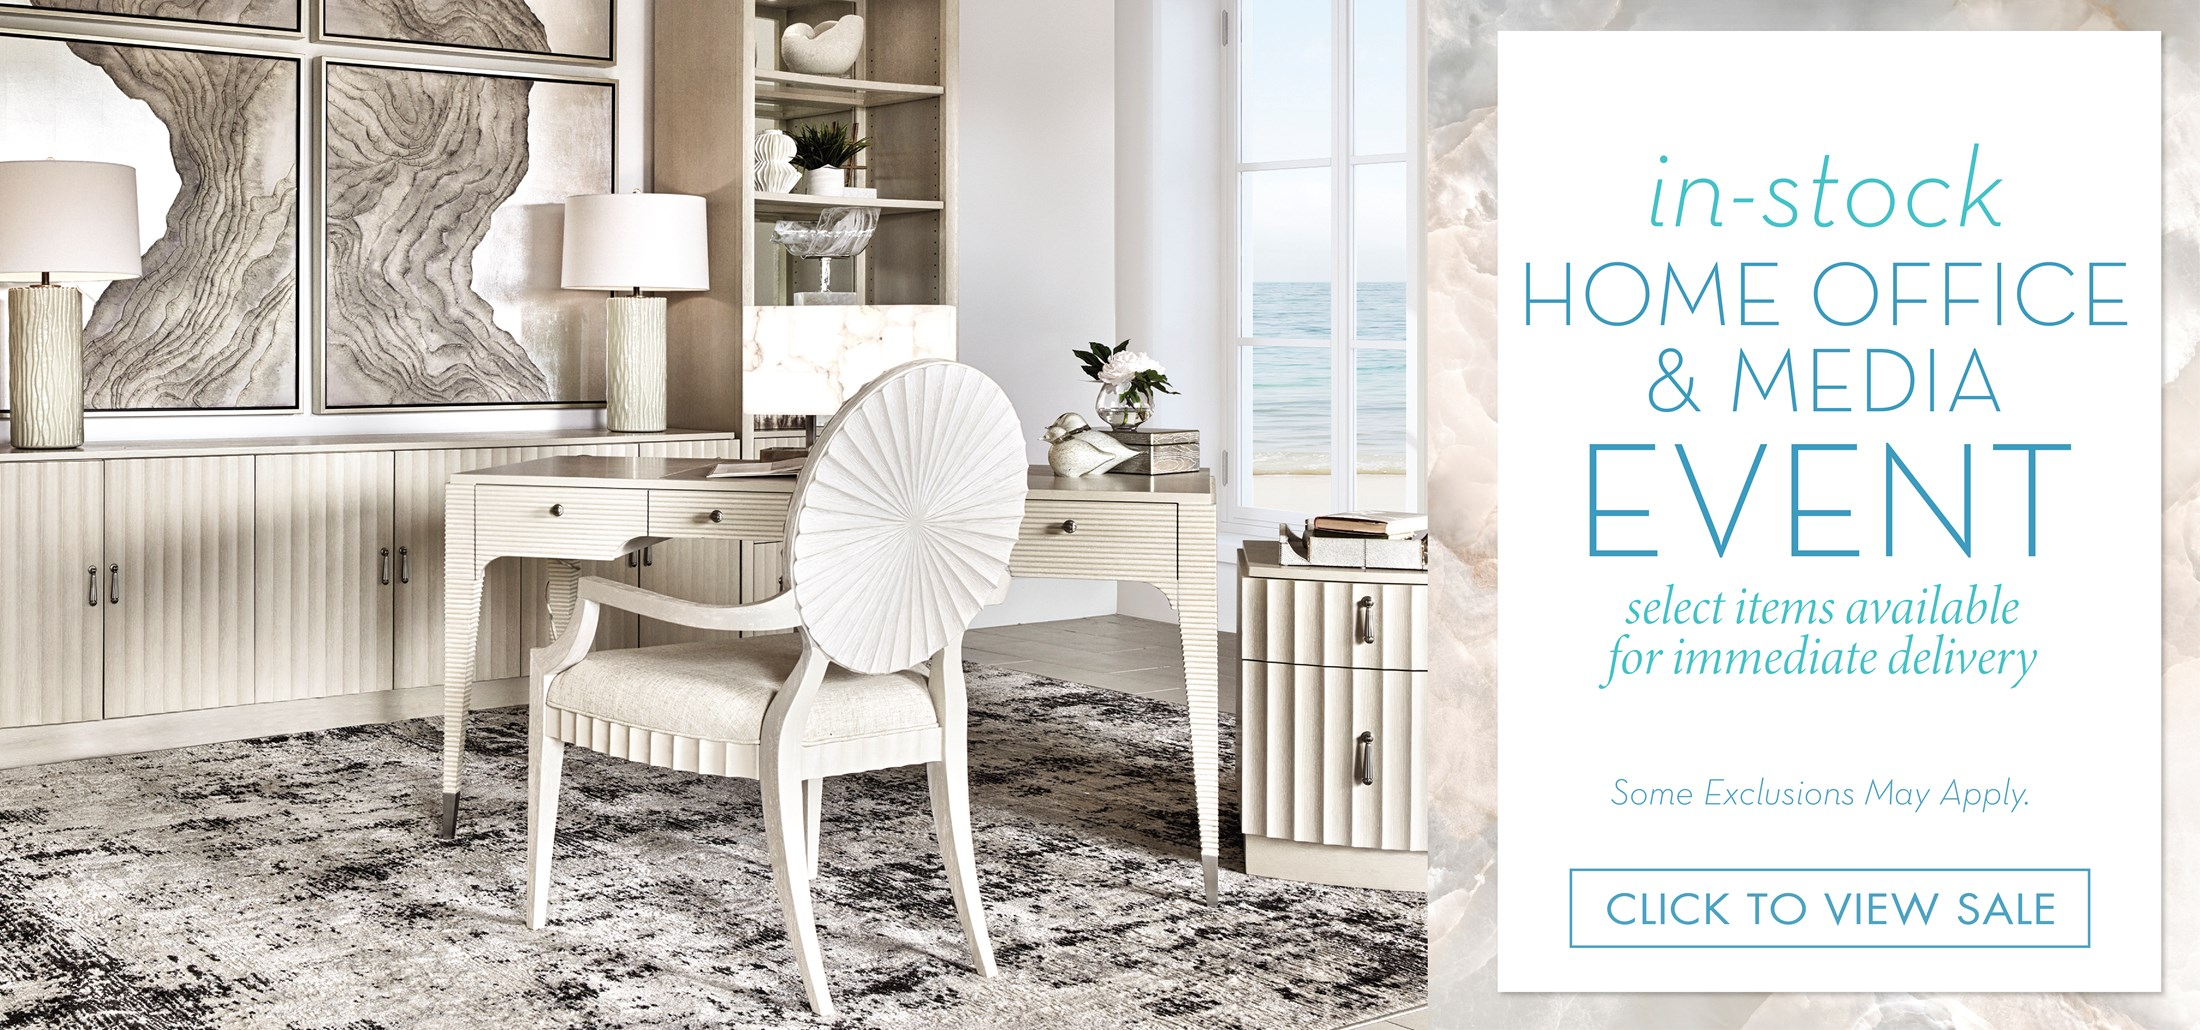 Image of a home office with a window overlooking the ocean. Text: In-Stock Home Office & Media Event. Select items available for immediate delivery. Some exclusions may apply. Click to view sale. Links to In-Stock Home Office & Media Event.